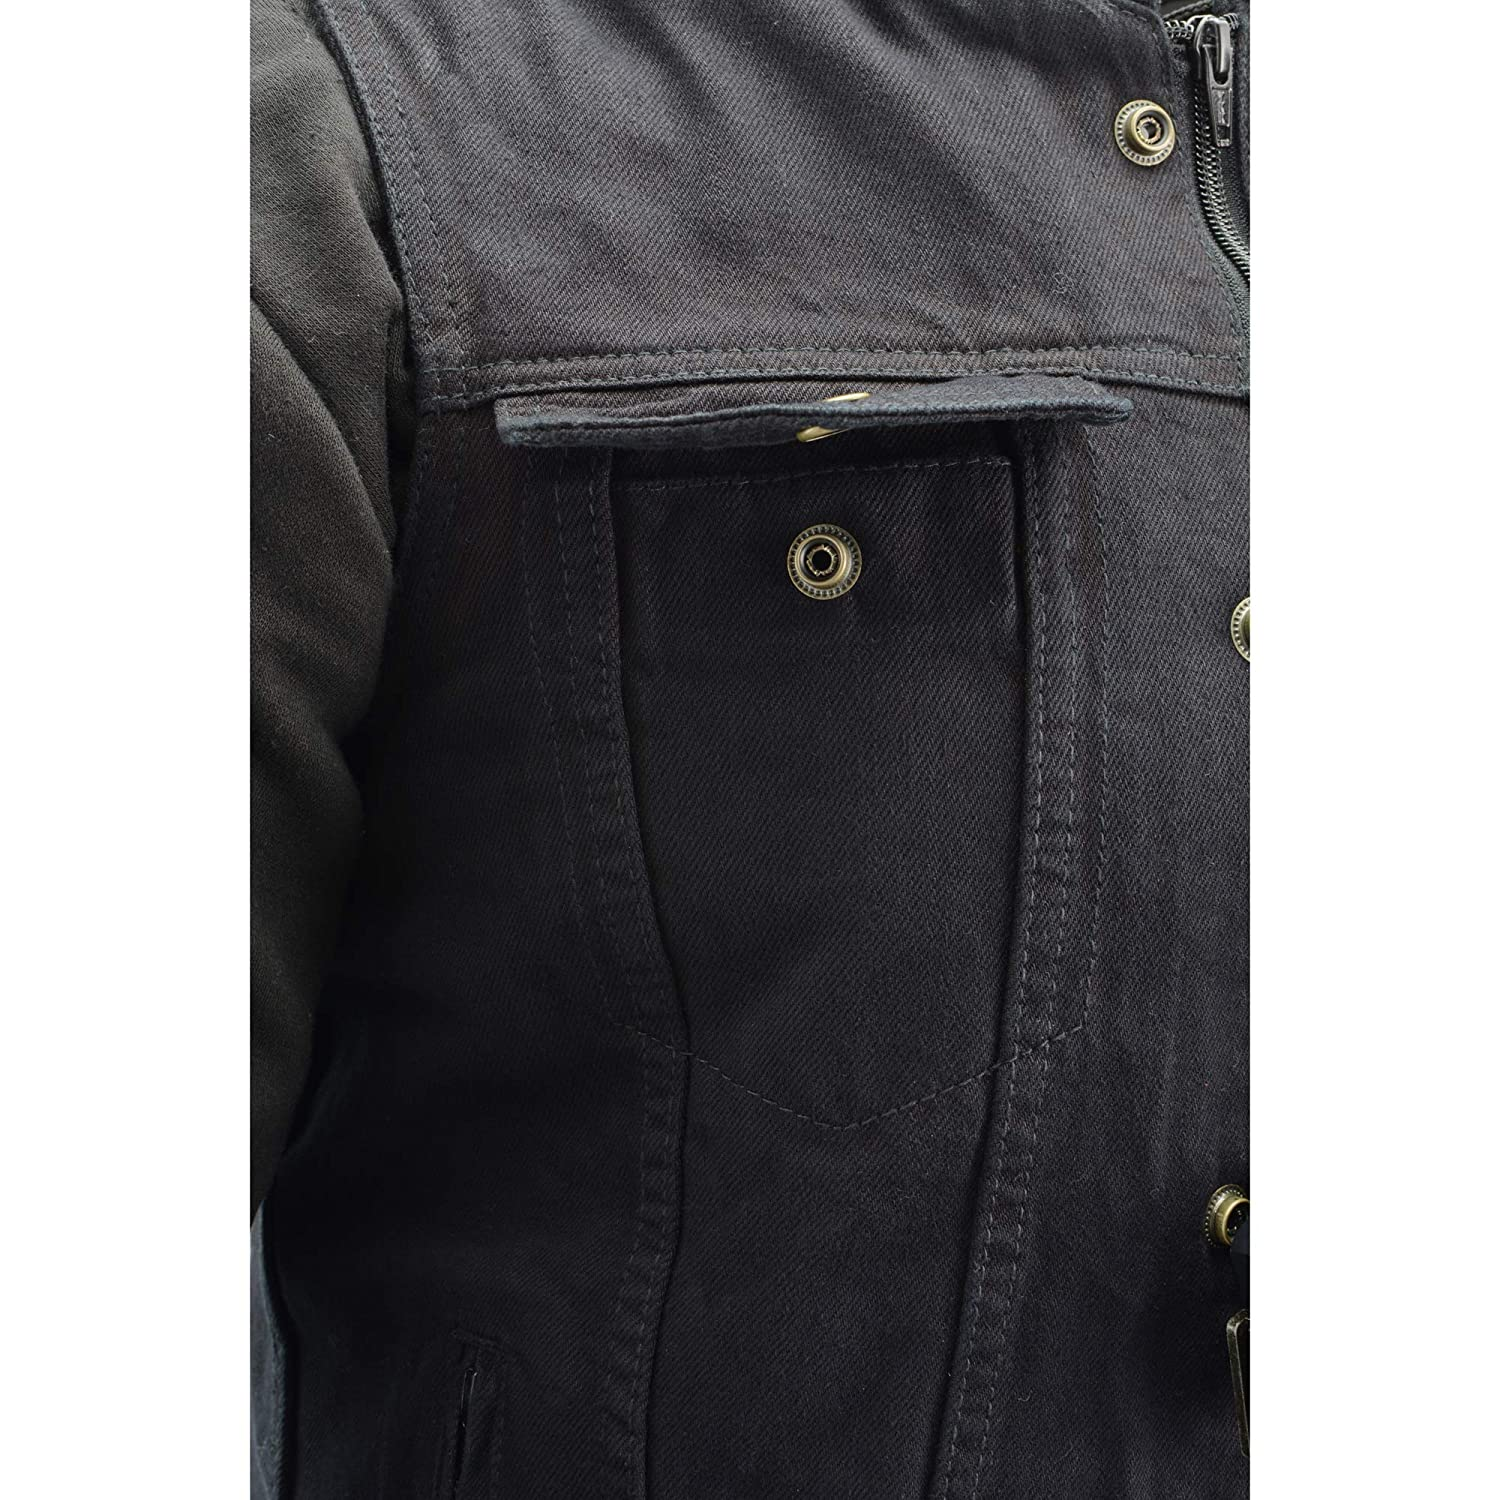 3X Milwaukee Performance-Mens Triple Option Club Style Vest with Fully Removable Hoodie Jacket Black